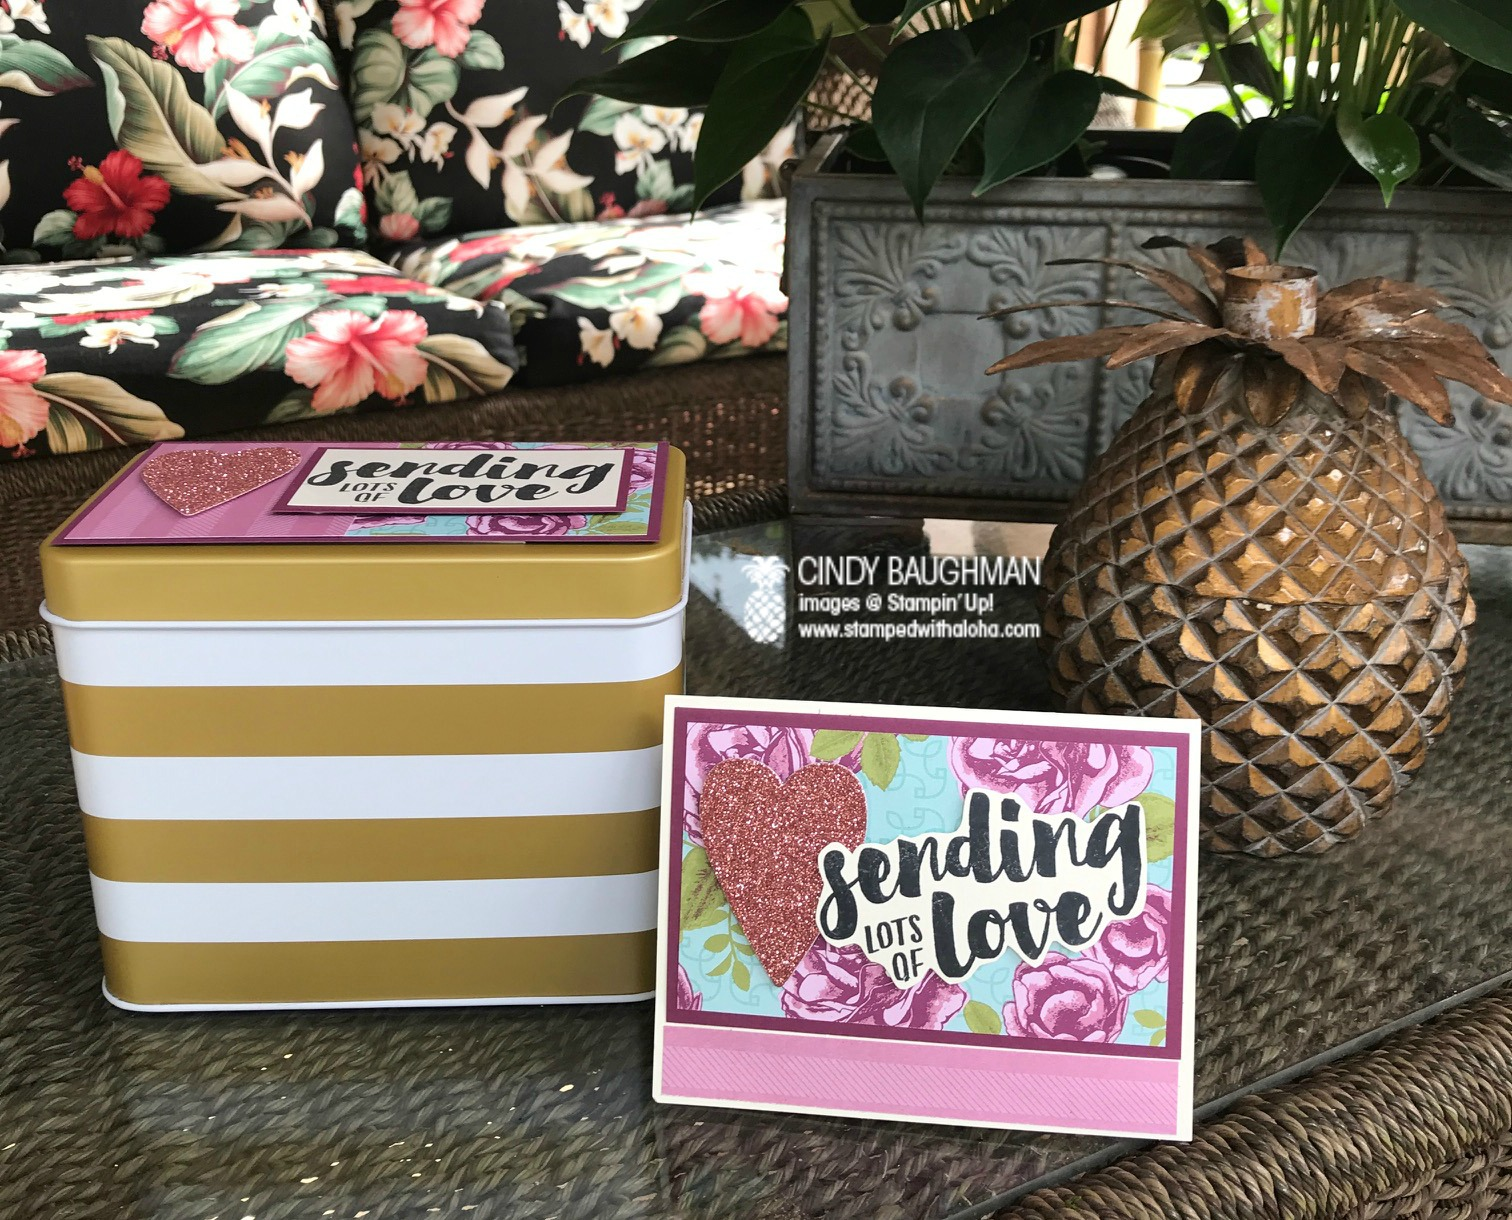 Sending Love Card and Box